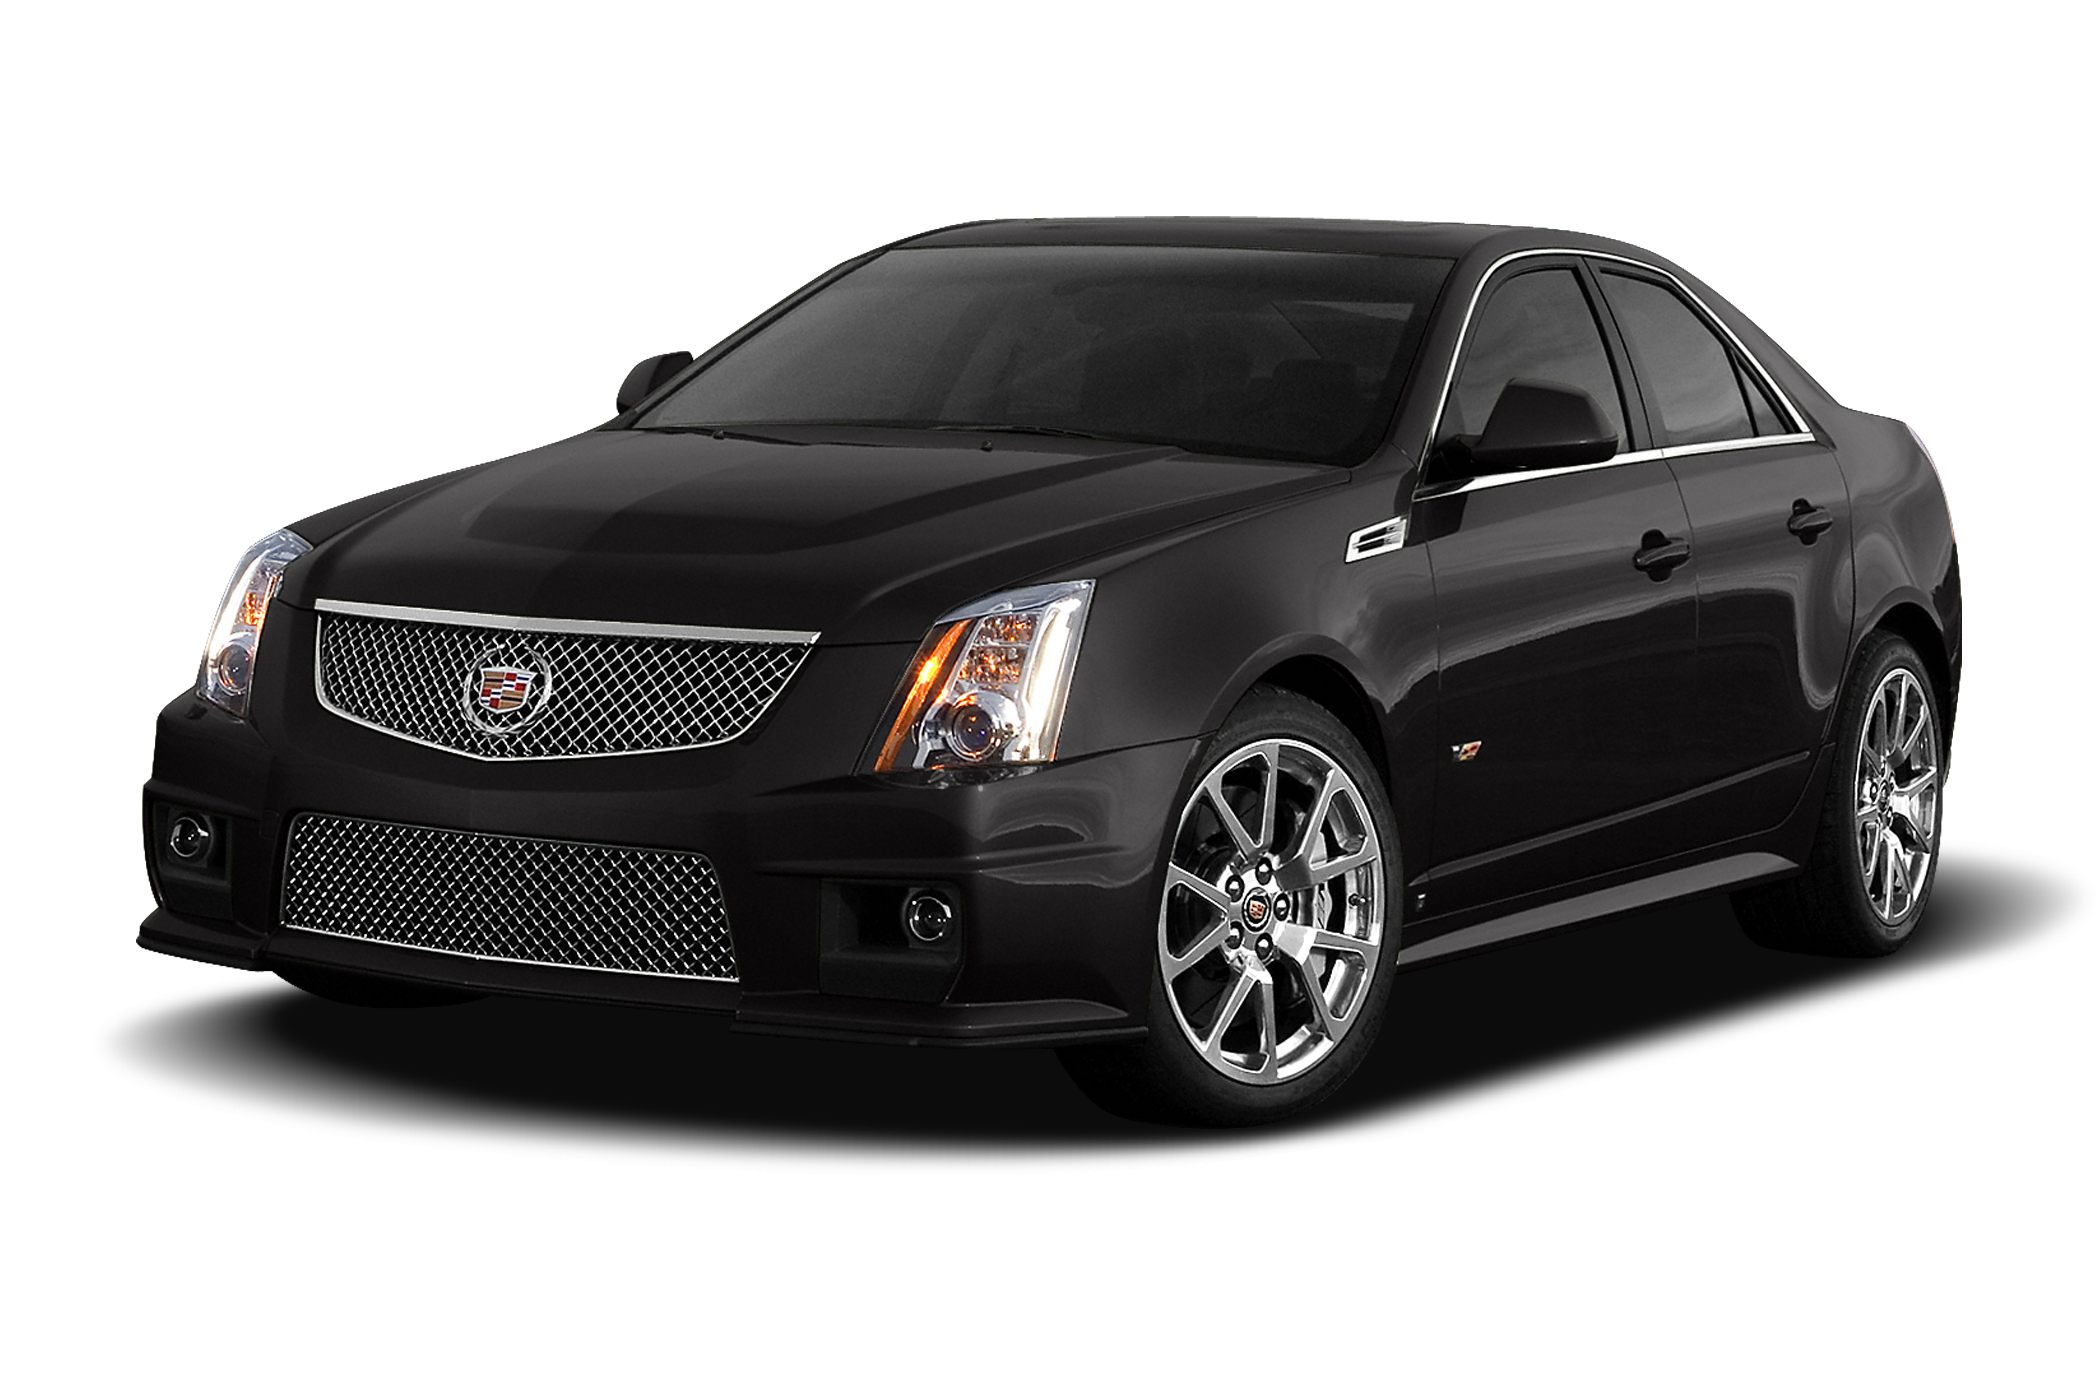 2010 Cadillac CTS-V